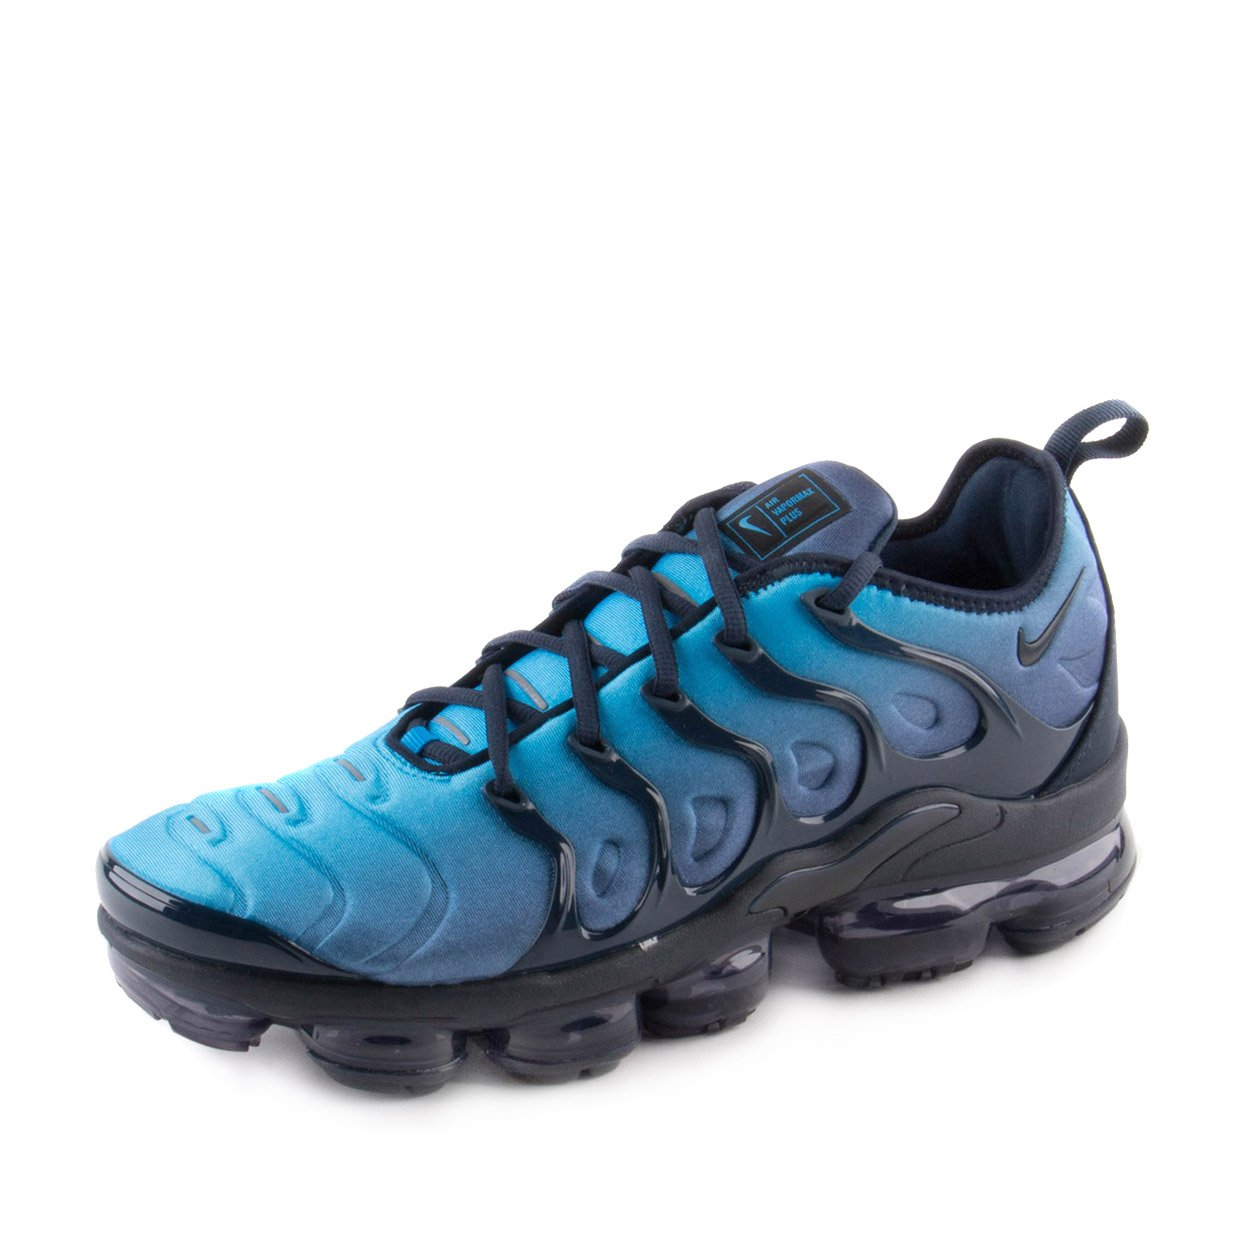 504f1aa065 Galleon - Nike Mens Air Vapormax Plus Obsidian/Photo Blue Neoprene Size 8